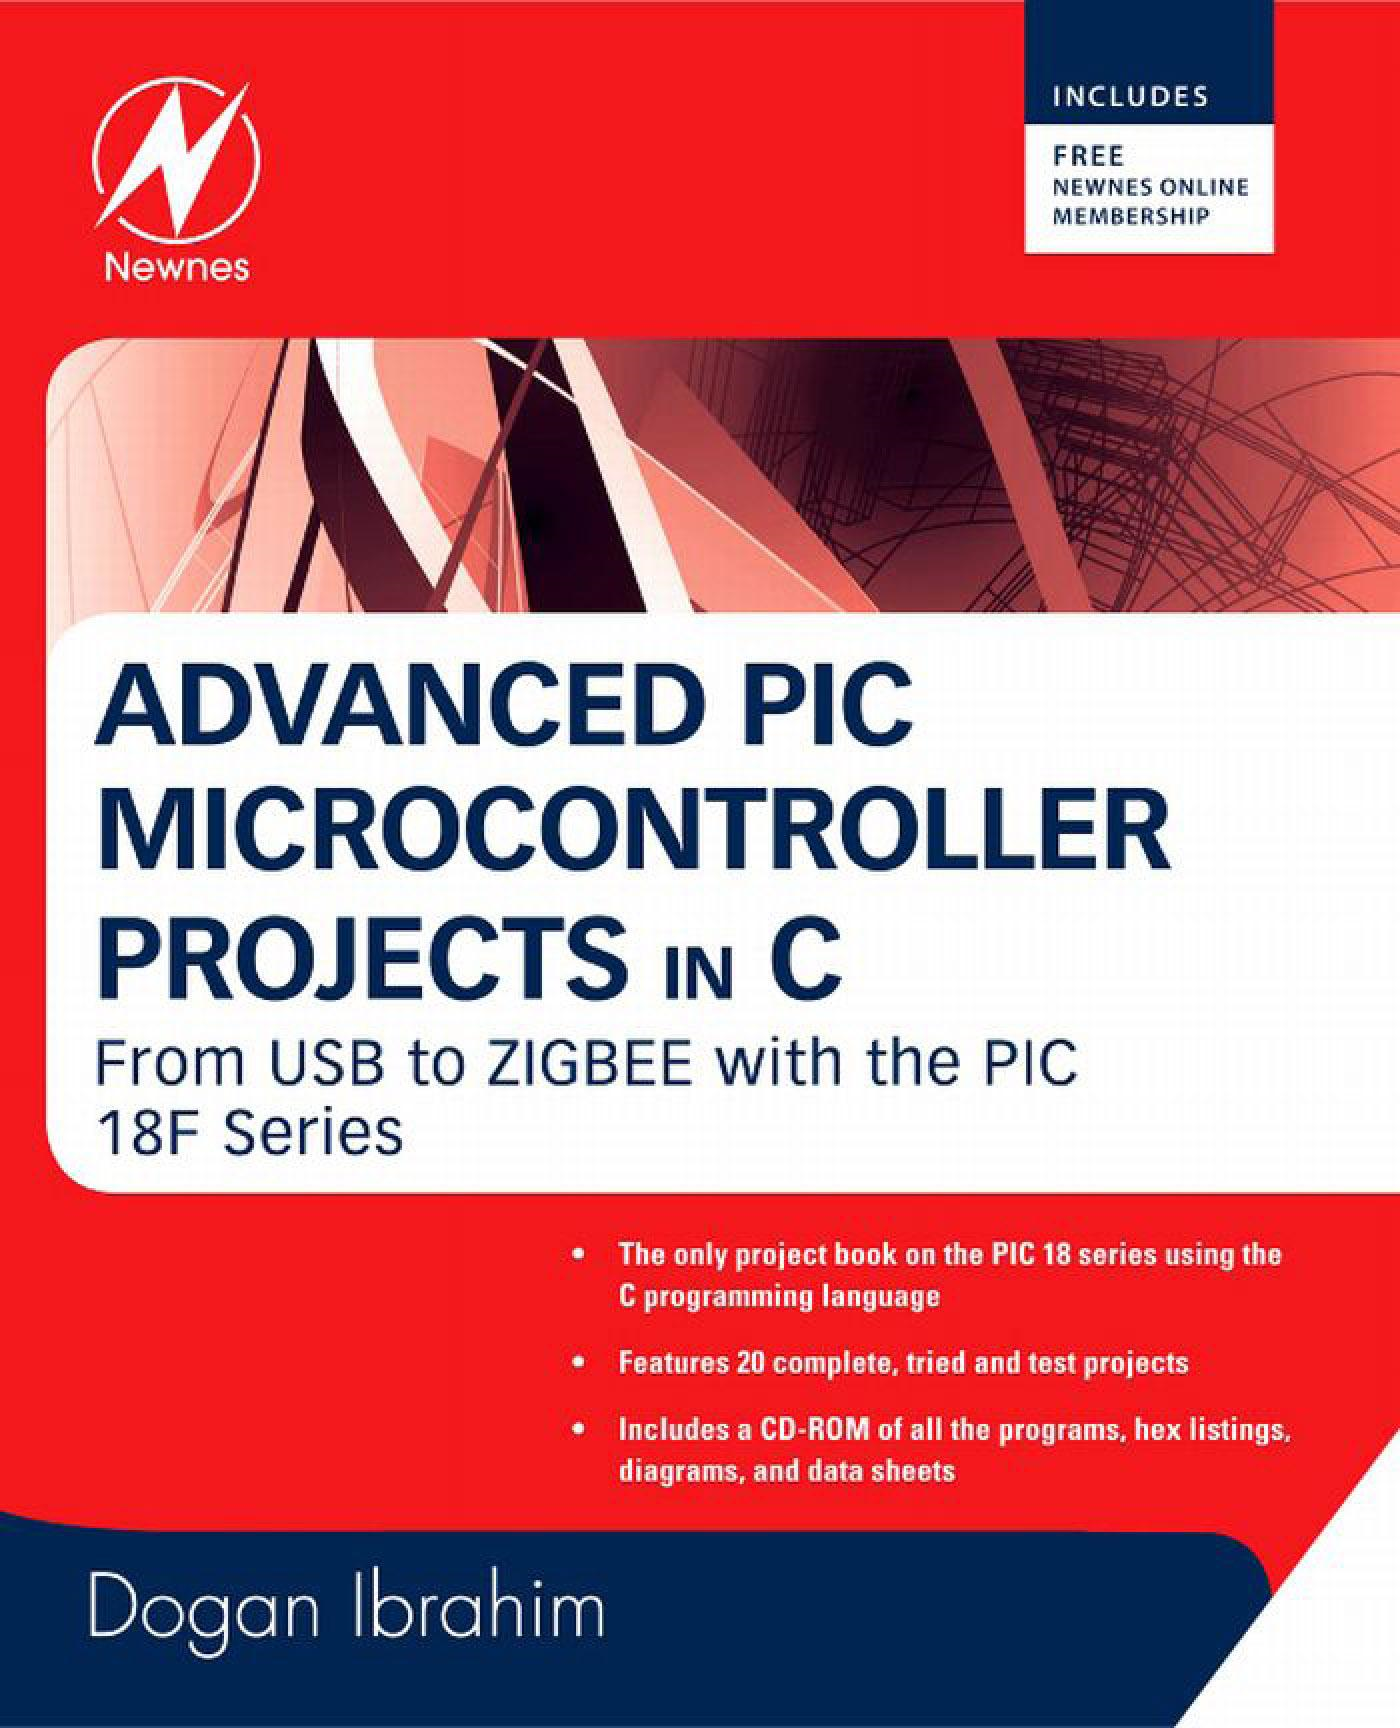 Advanced PIC Microcontroller Projects in C: From USB to RTOS with the PIC 18F Series By: Ibrahim, Dogan